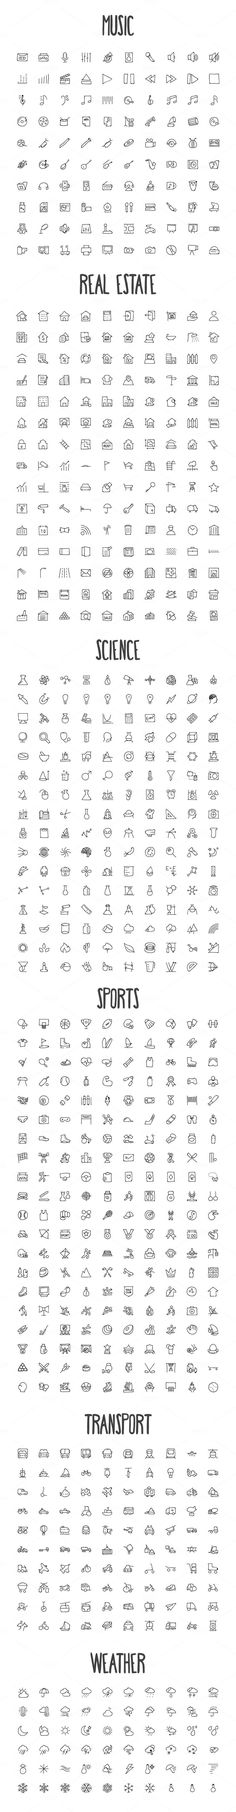 2440 Hand Drawn Doodle Icons Bundle by Creative Stall on Creative Market Tatto Drawings Doodle Drawings, Easy Drawings, Doodle Art, Tattoo Drawings, Tattoo Sketches, Doodle Frames, Doodle Icon, Bullet Journal Inspiration, Drawing Tips